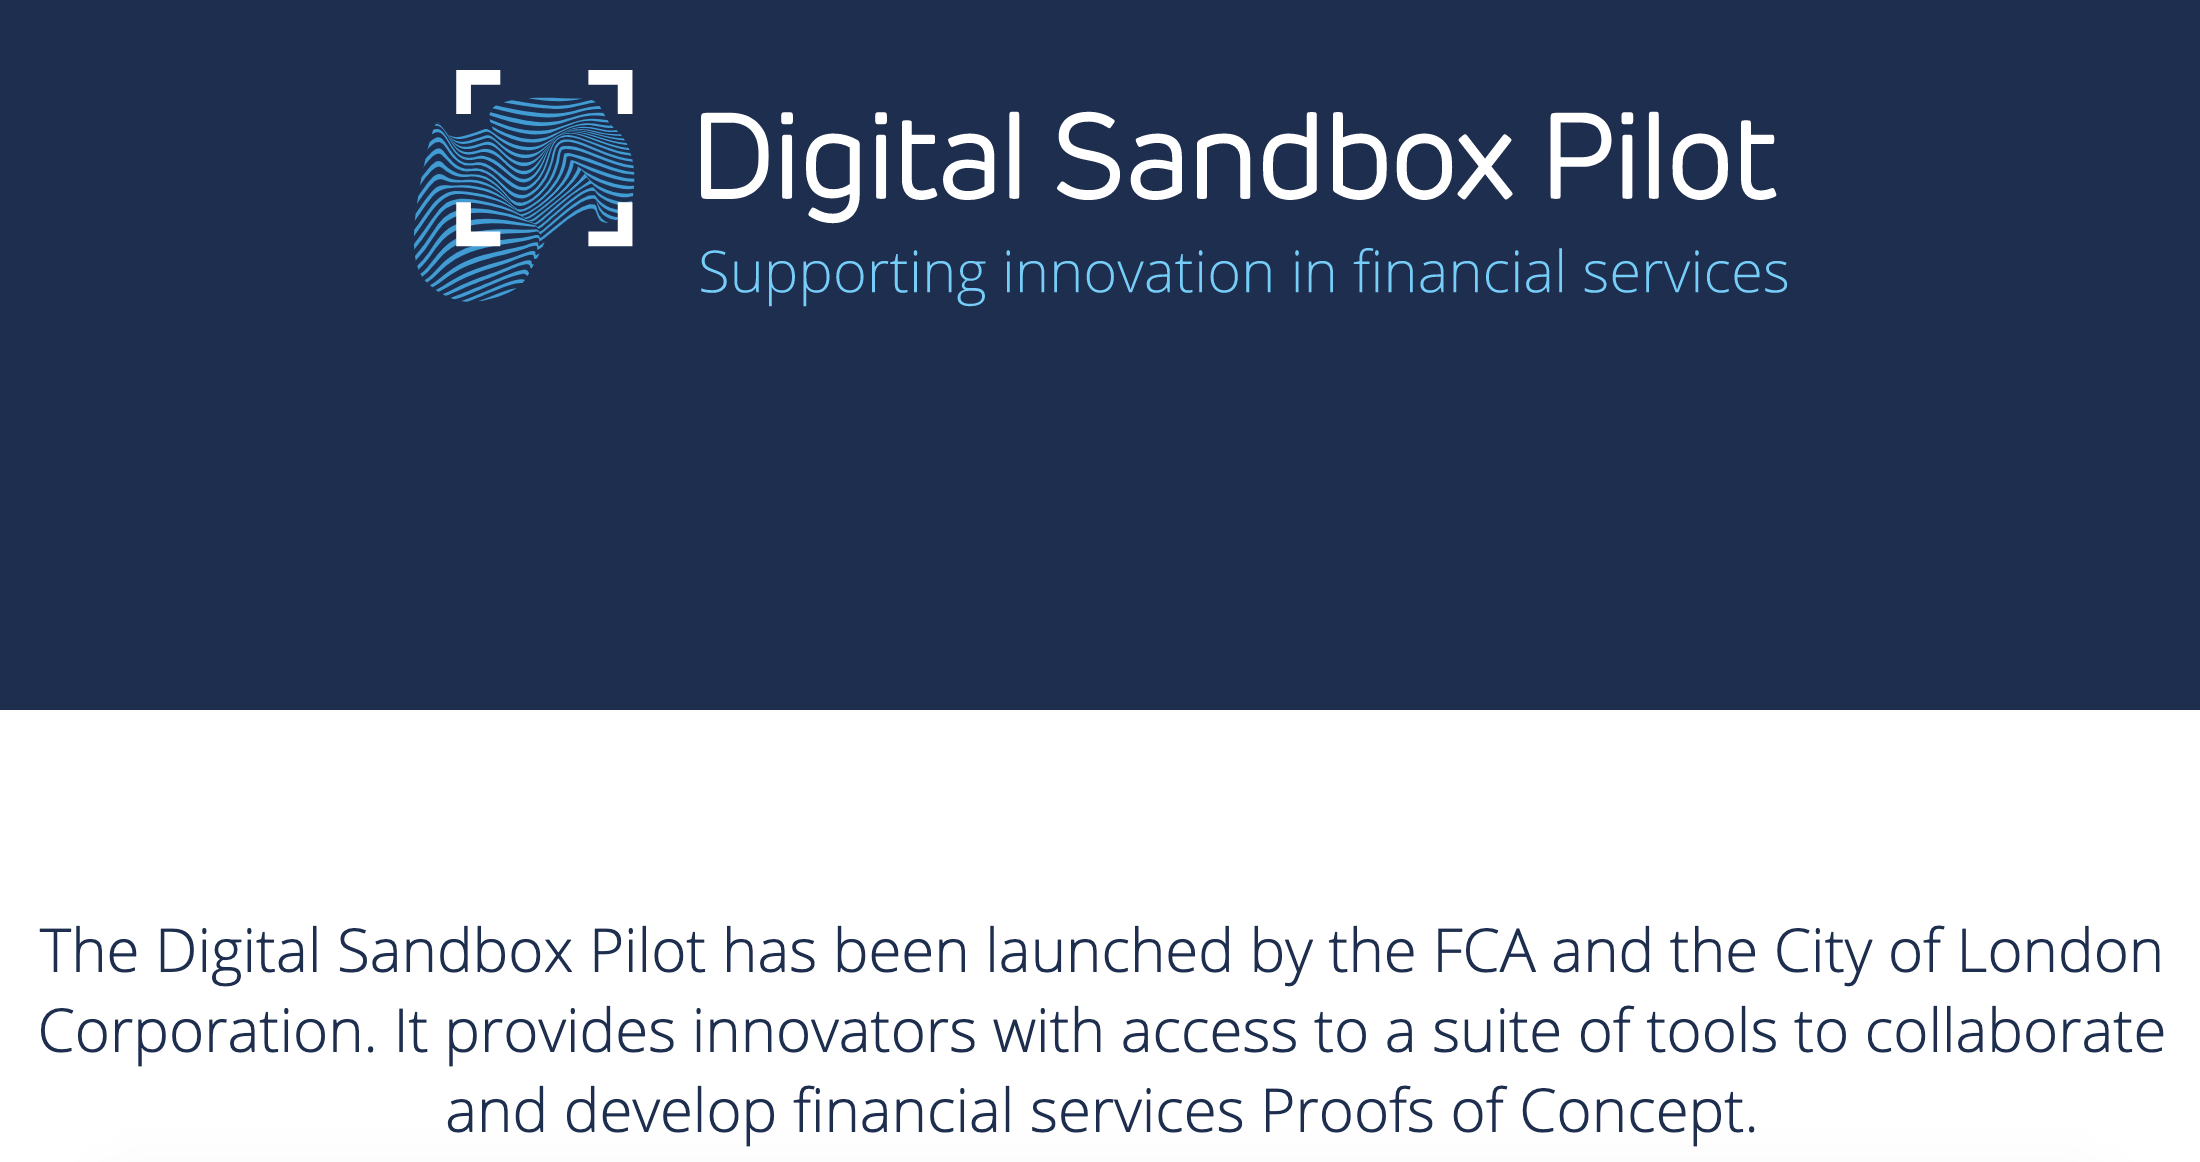 Northern FinTechs encouraged to apply to Digital Sandbox by 30th October